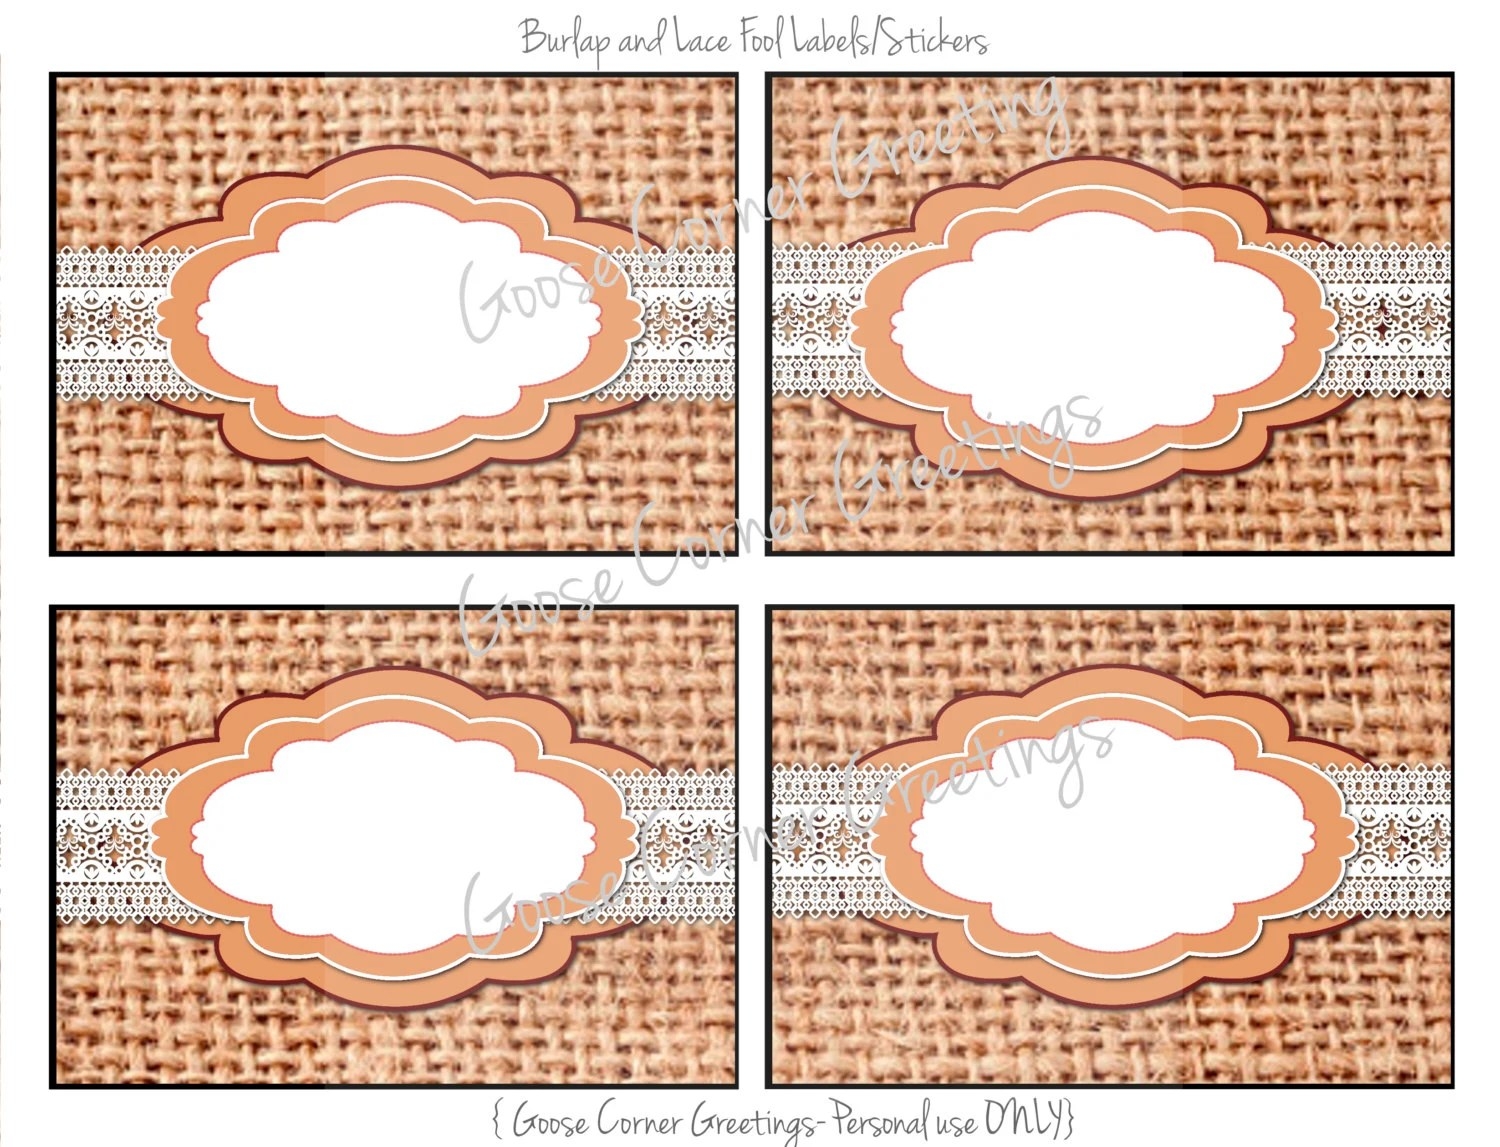 Printable Buffet Food Labels Burlap And By Goosecornergreetings